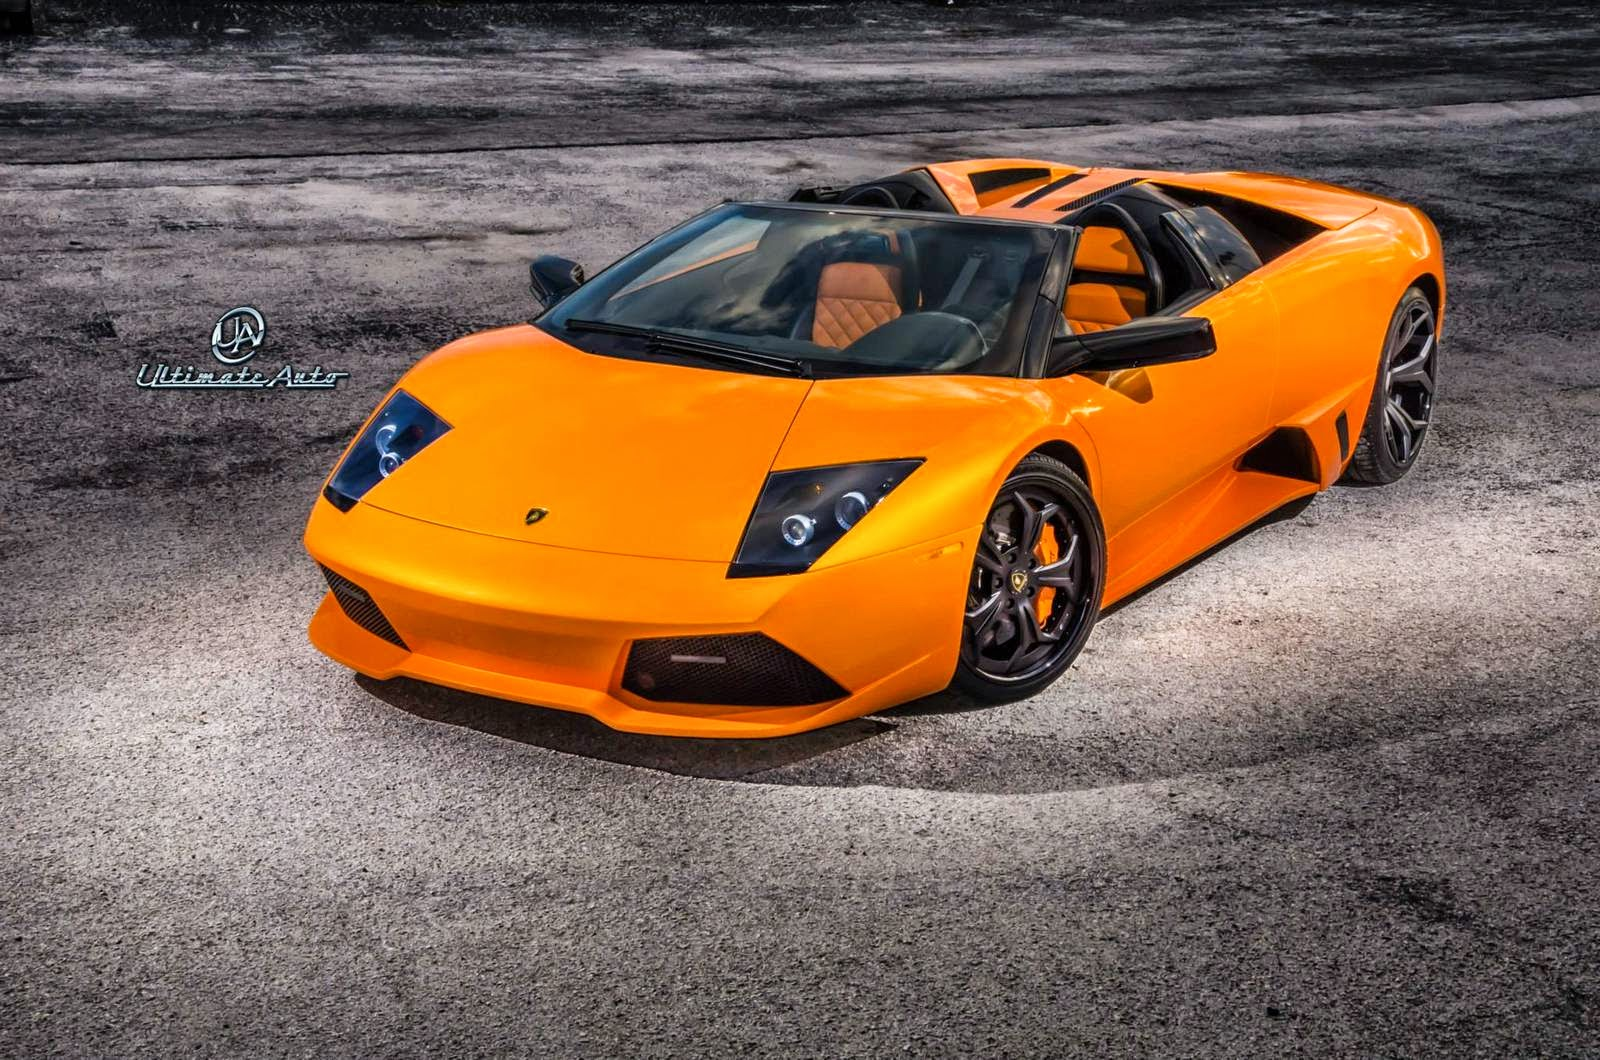 2019 Lamborghini Murcielago LP640 Roadster photo - 5